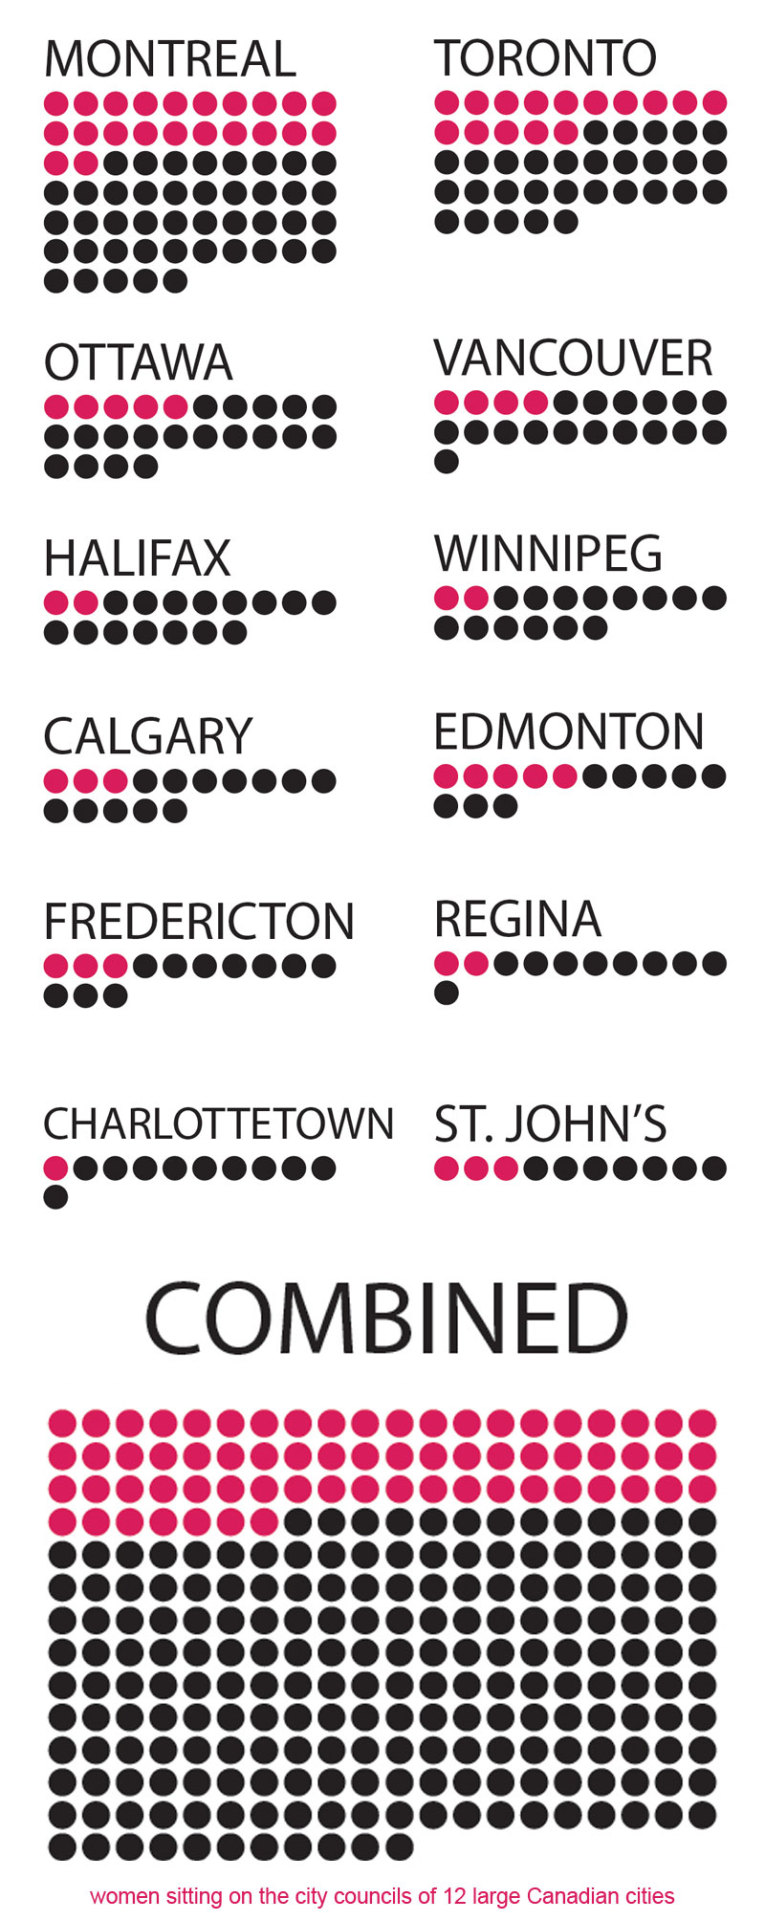 Women are greatly underrepresented in Canadian municipal governments.